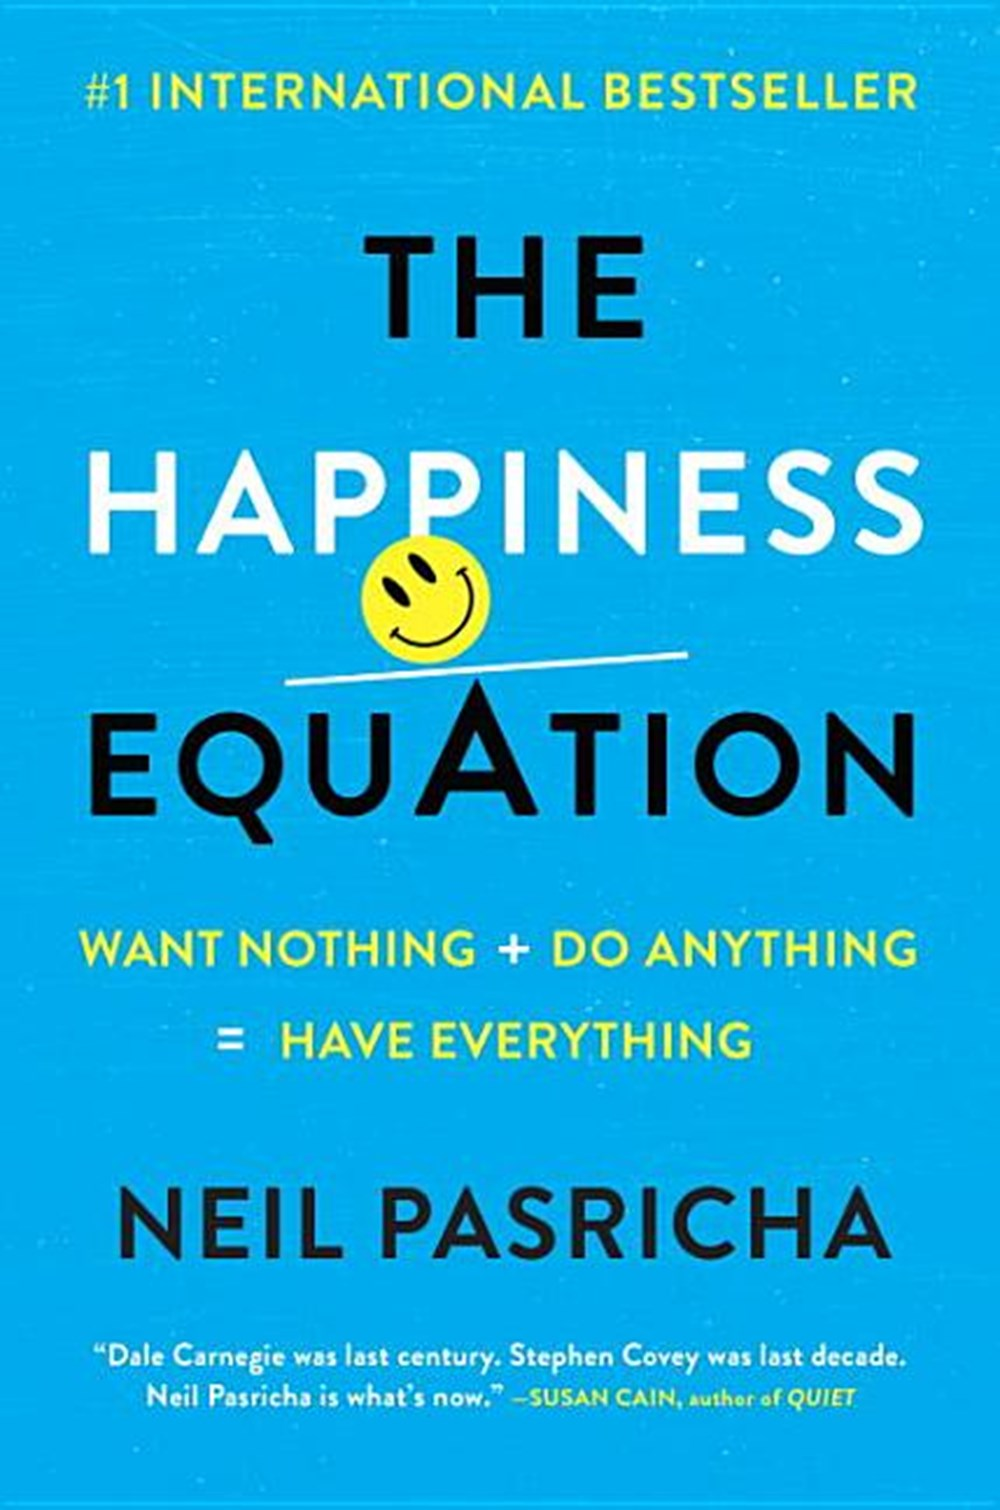 Happiness Equation Want Nothing + Do Anything = Have Everything